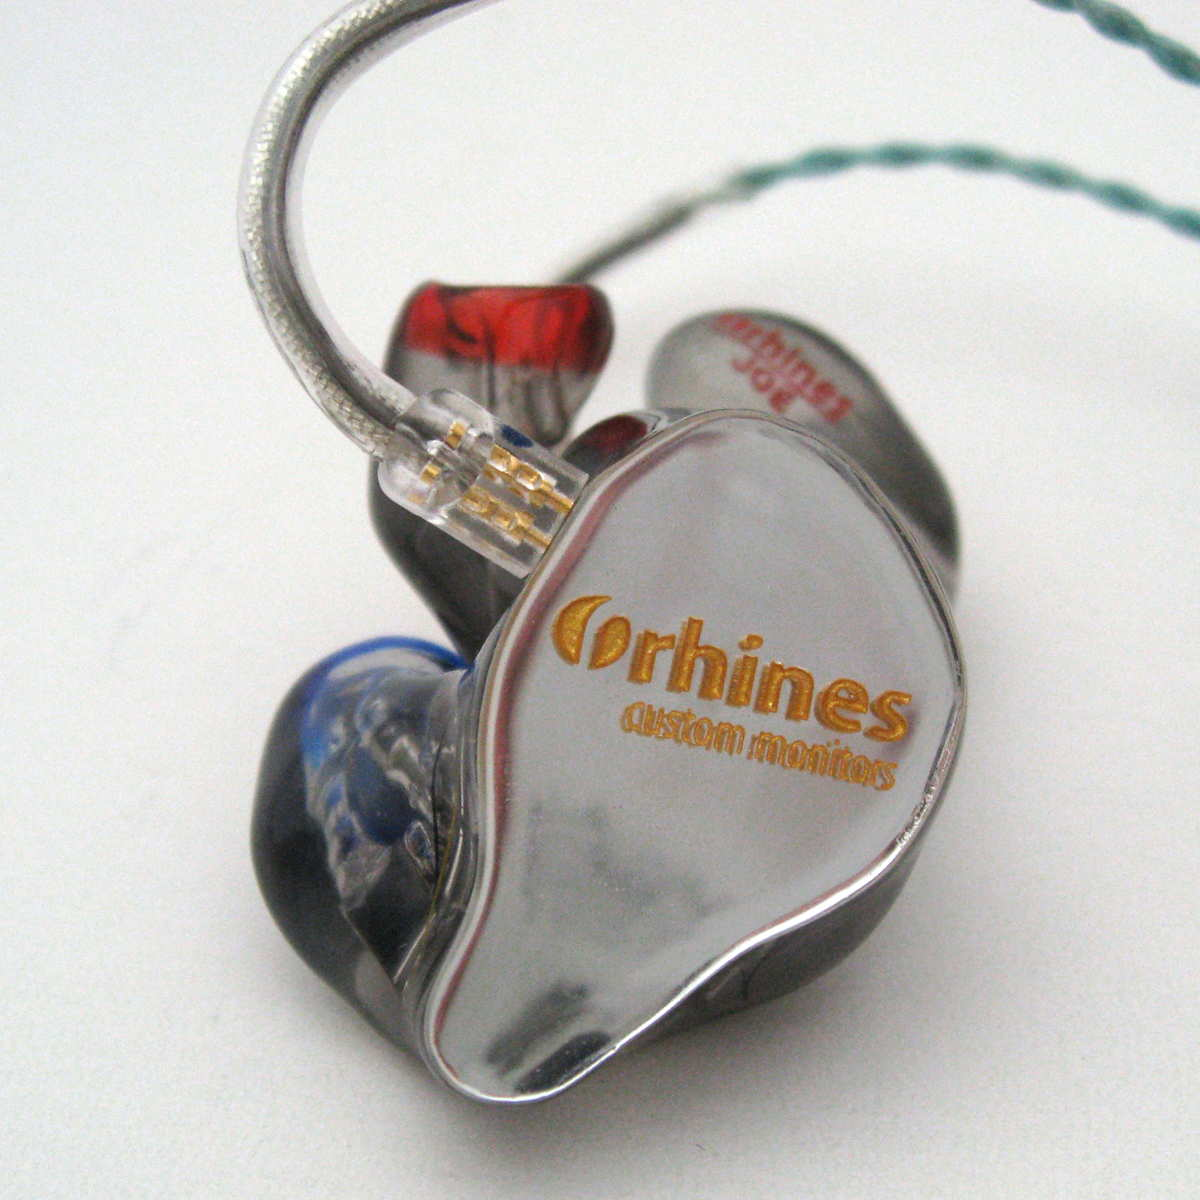 Rhines Custom Monitors Stage 3 custom in-ear monitors